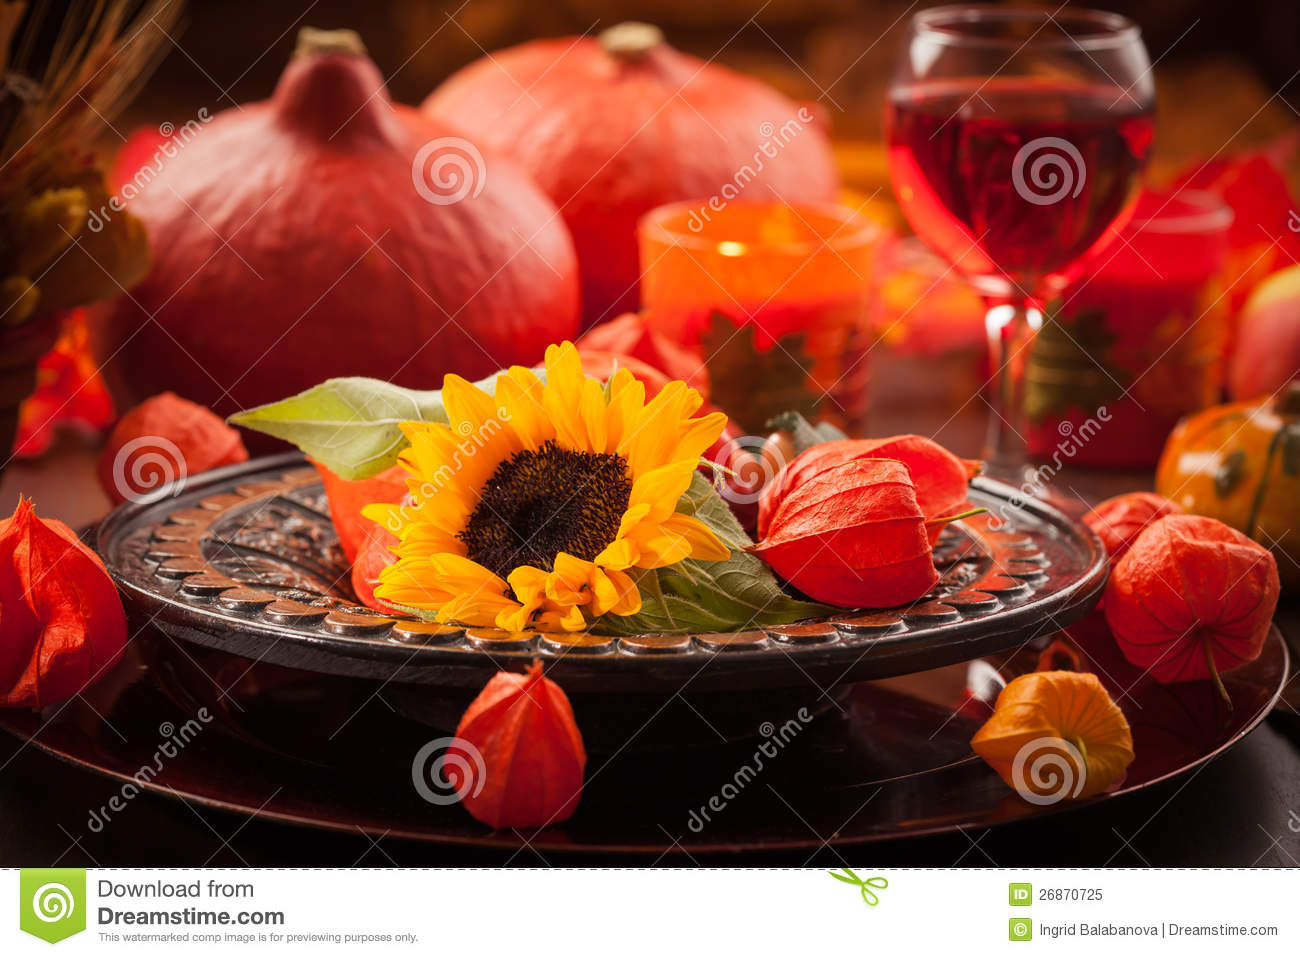 Autumn place setting royalty free stock photo image for Place setting images